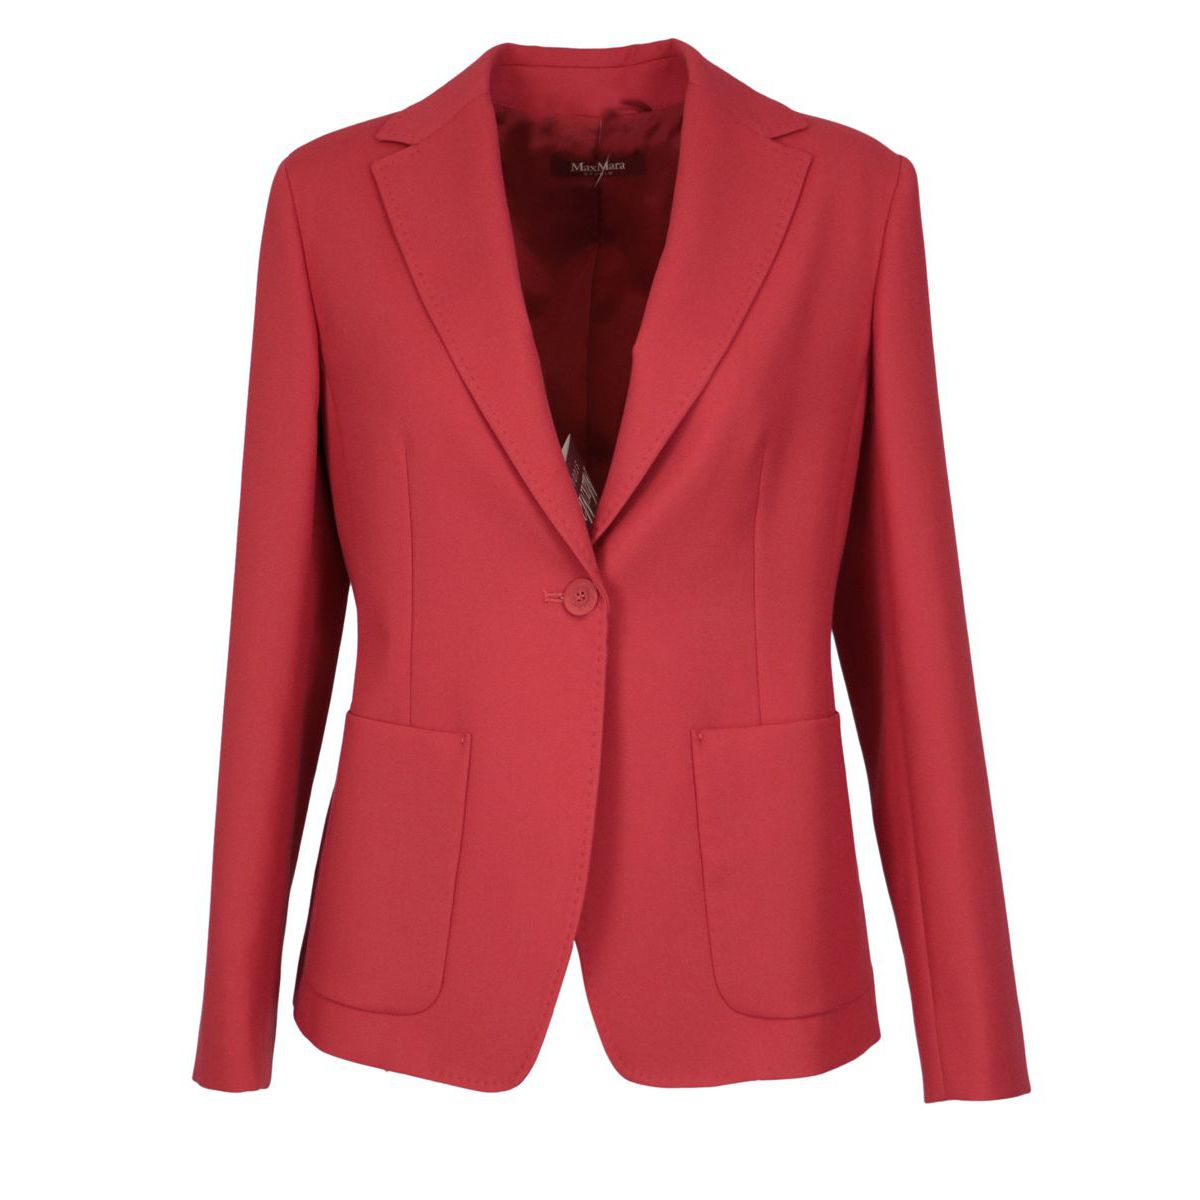 Cotton jacket with patch pockets and visible stitching India red MAX MARA STUDIO